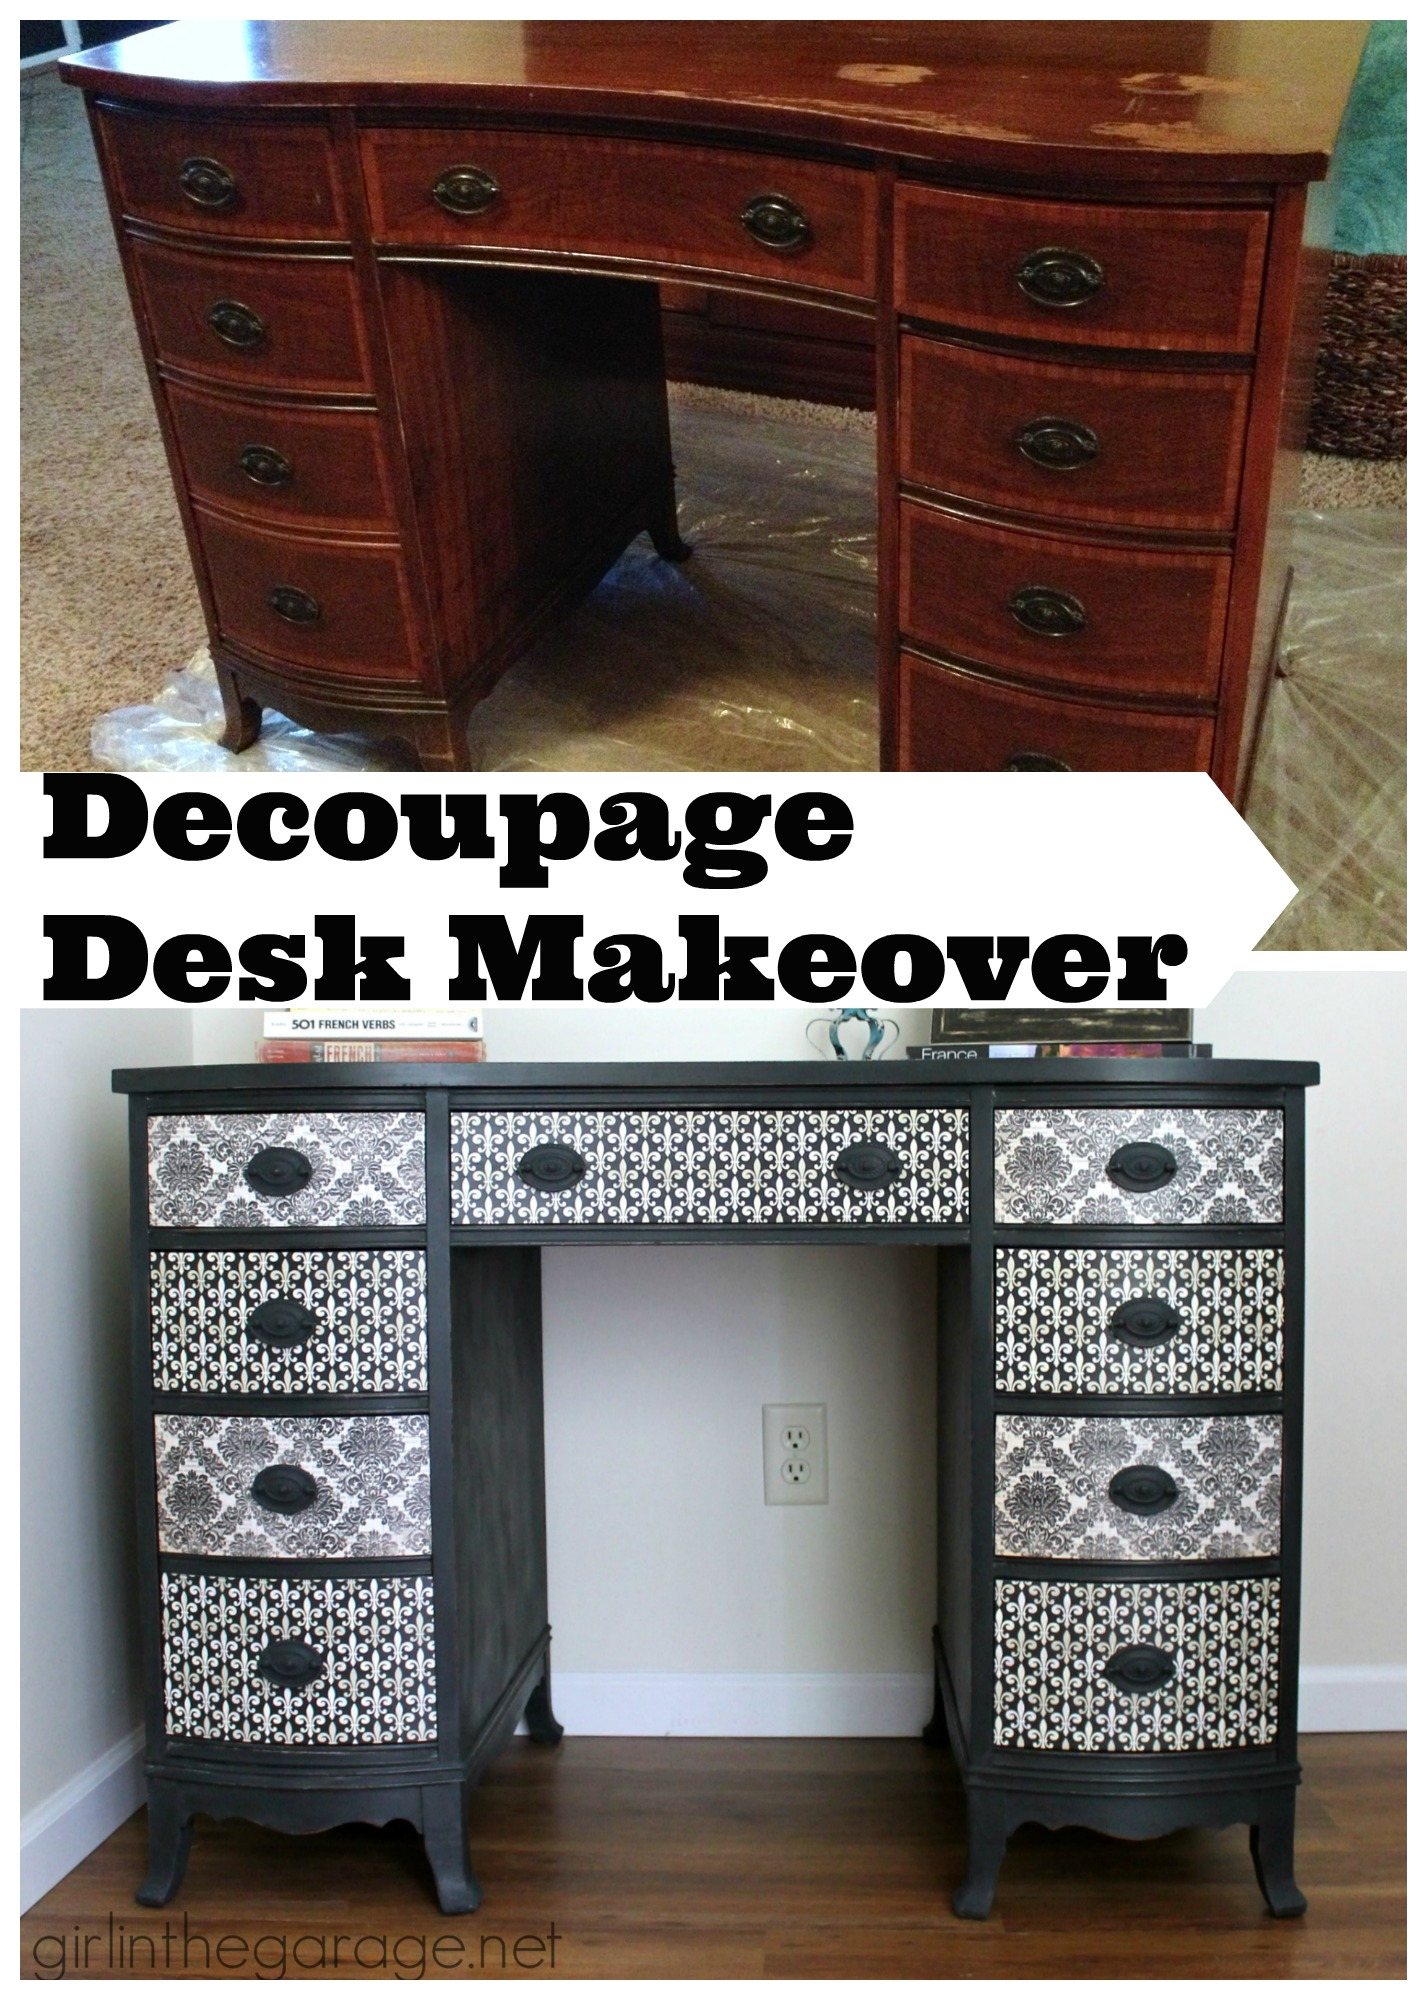 How to decoupage a vintage desk with chic French paper - step by step tutorial by Girl in the Garage